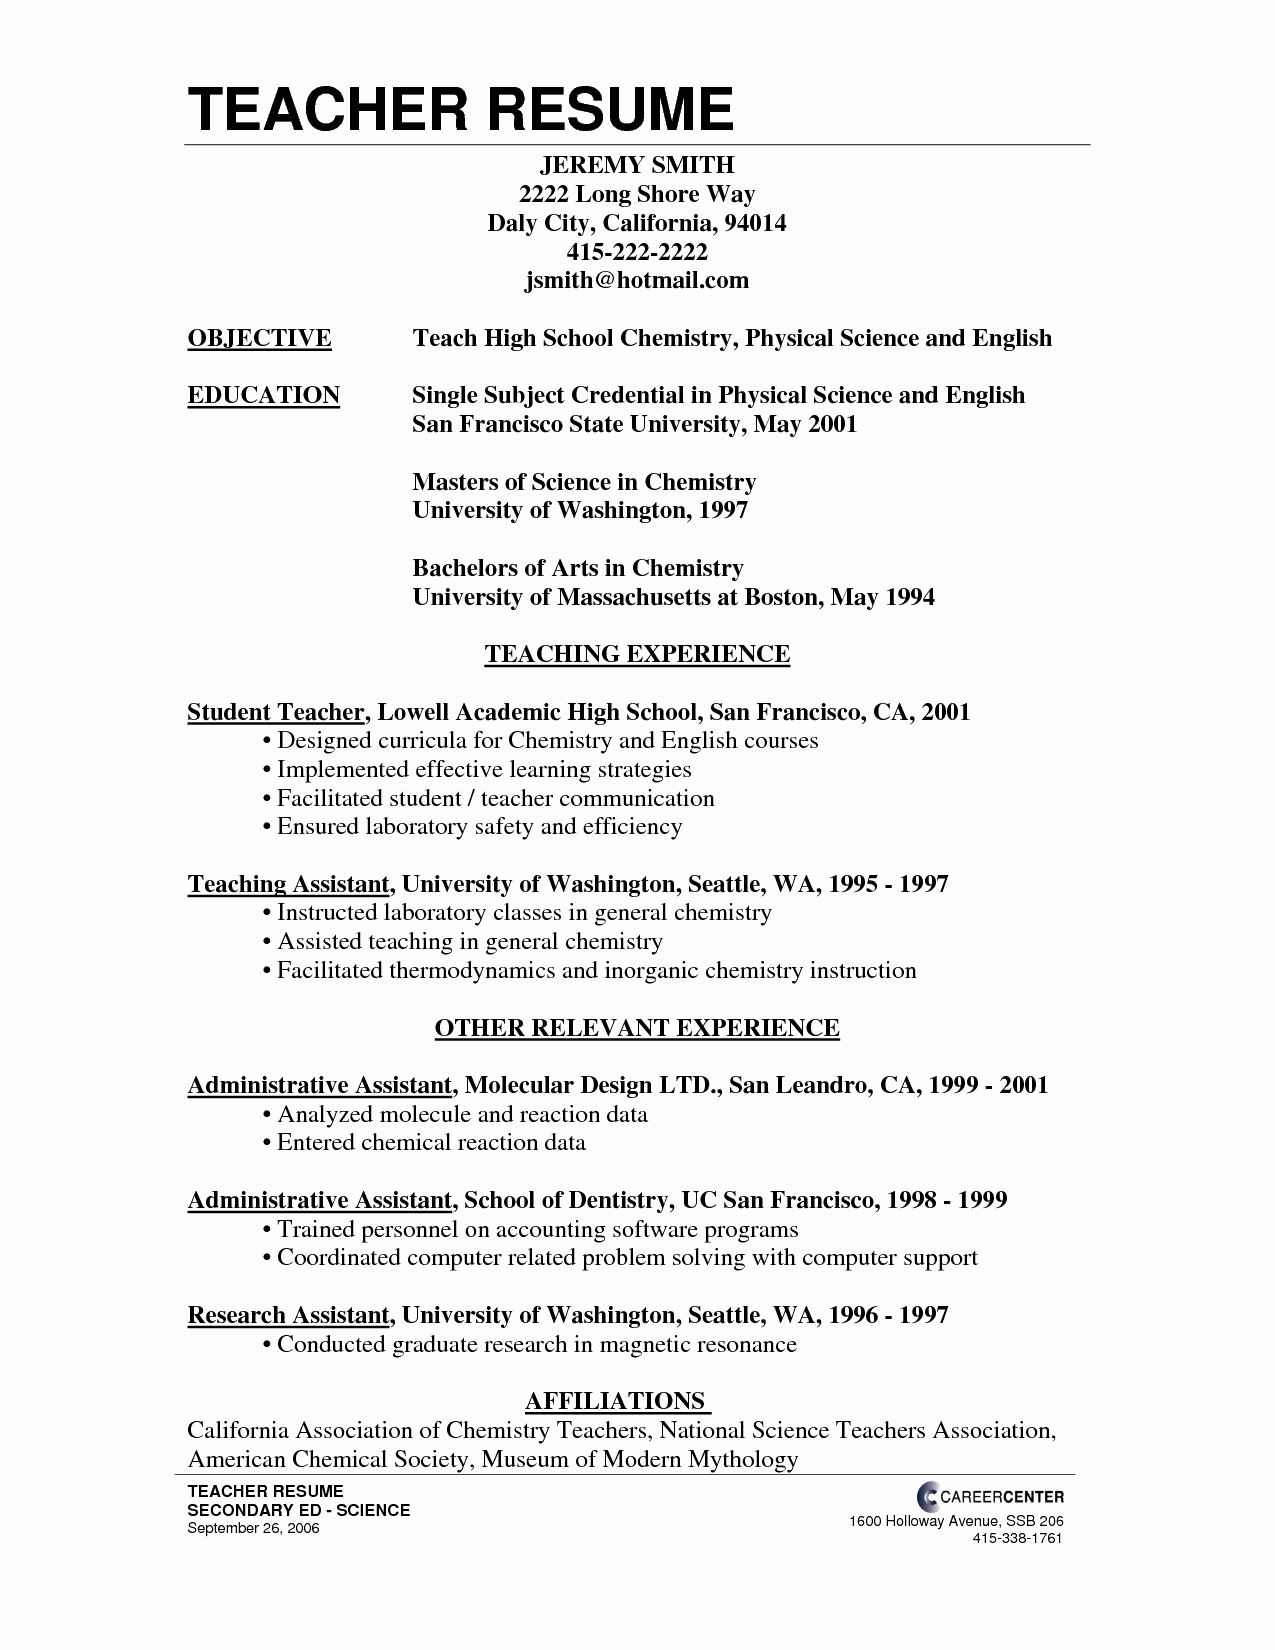 Free Job Cover Letter Template - Resume Cover Letter Example New Free Cover Letter Templates Examples